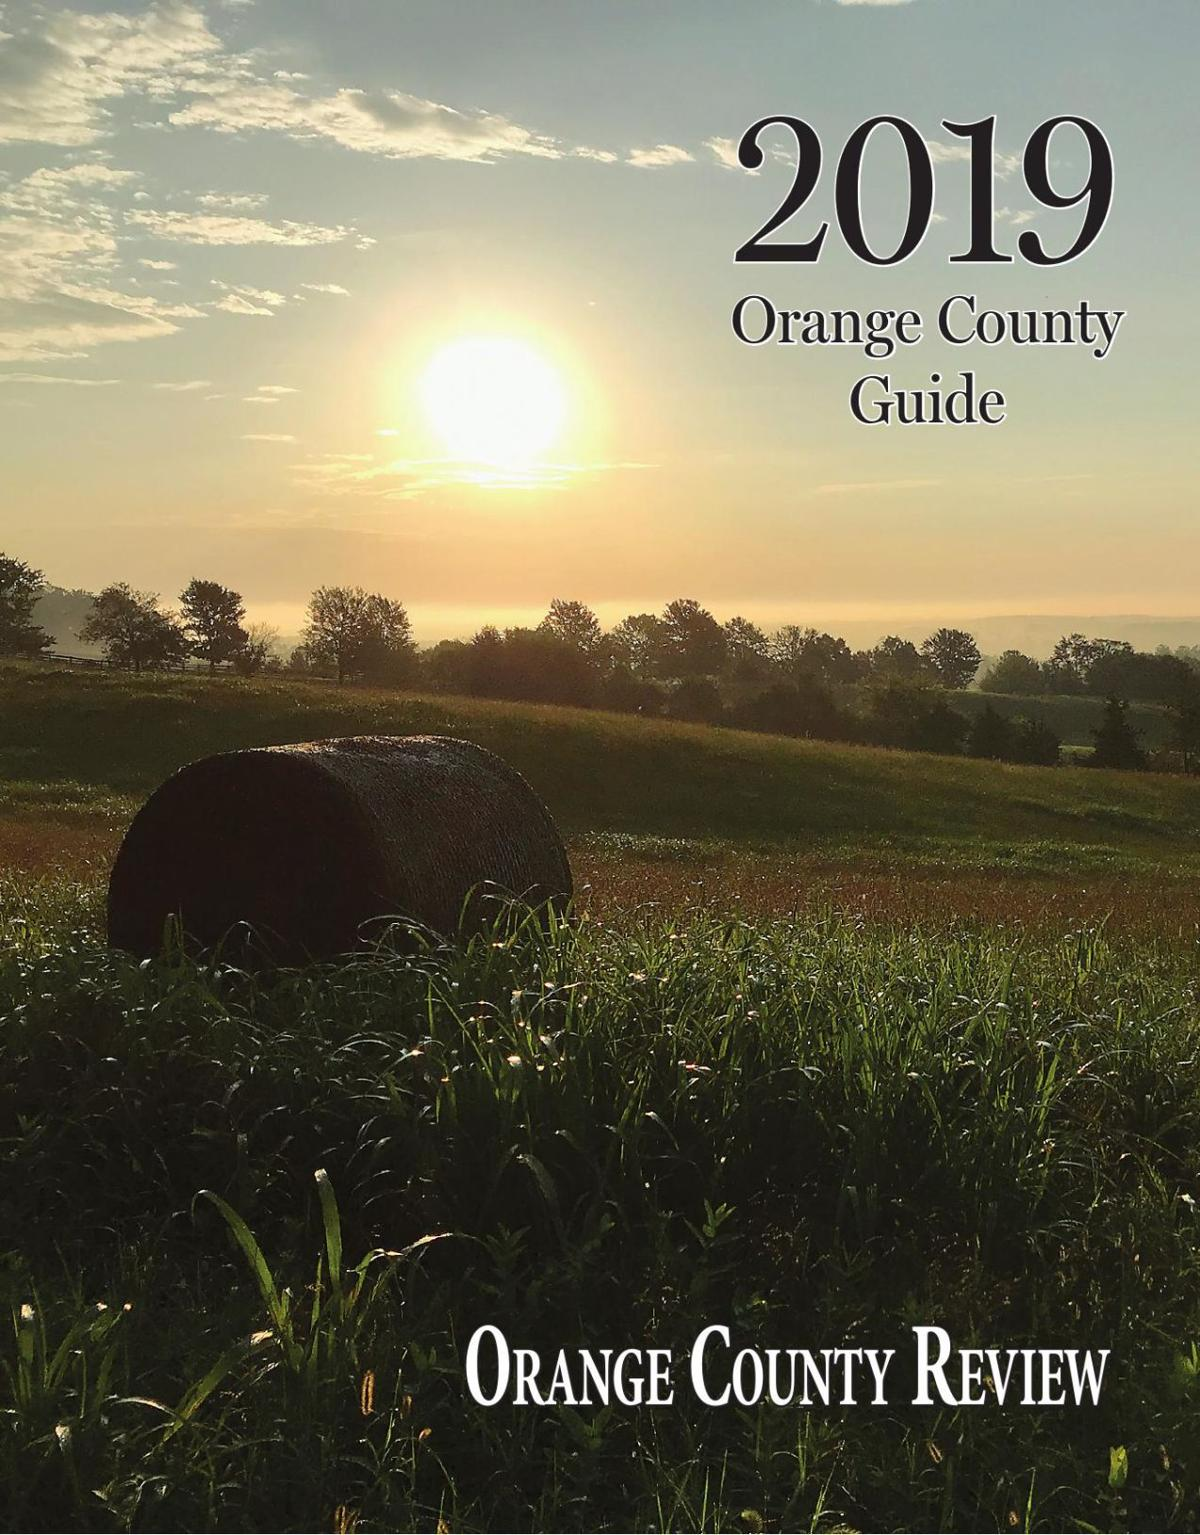 2019 Orange County Guide